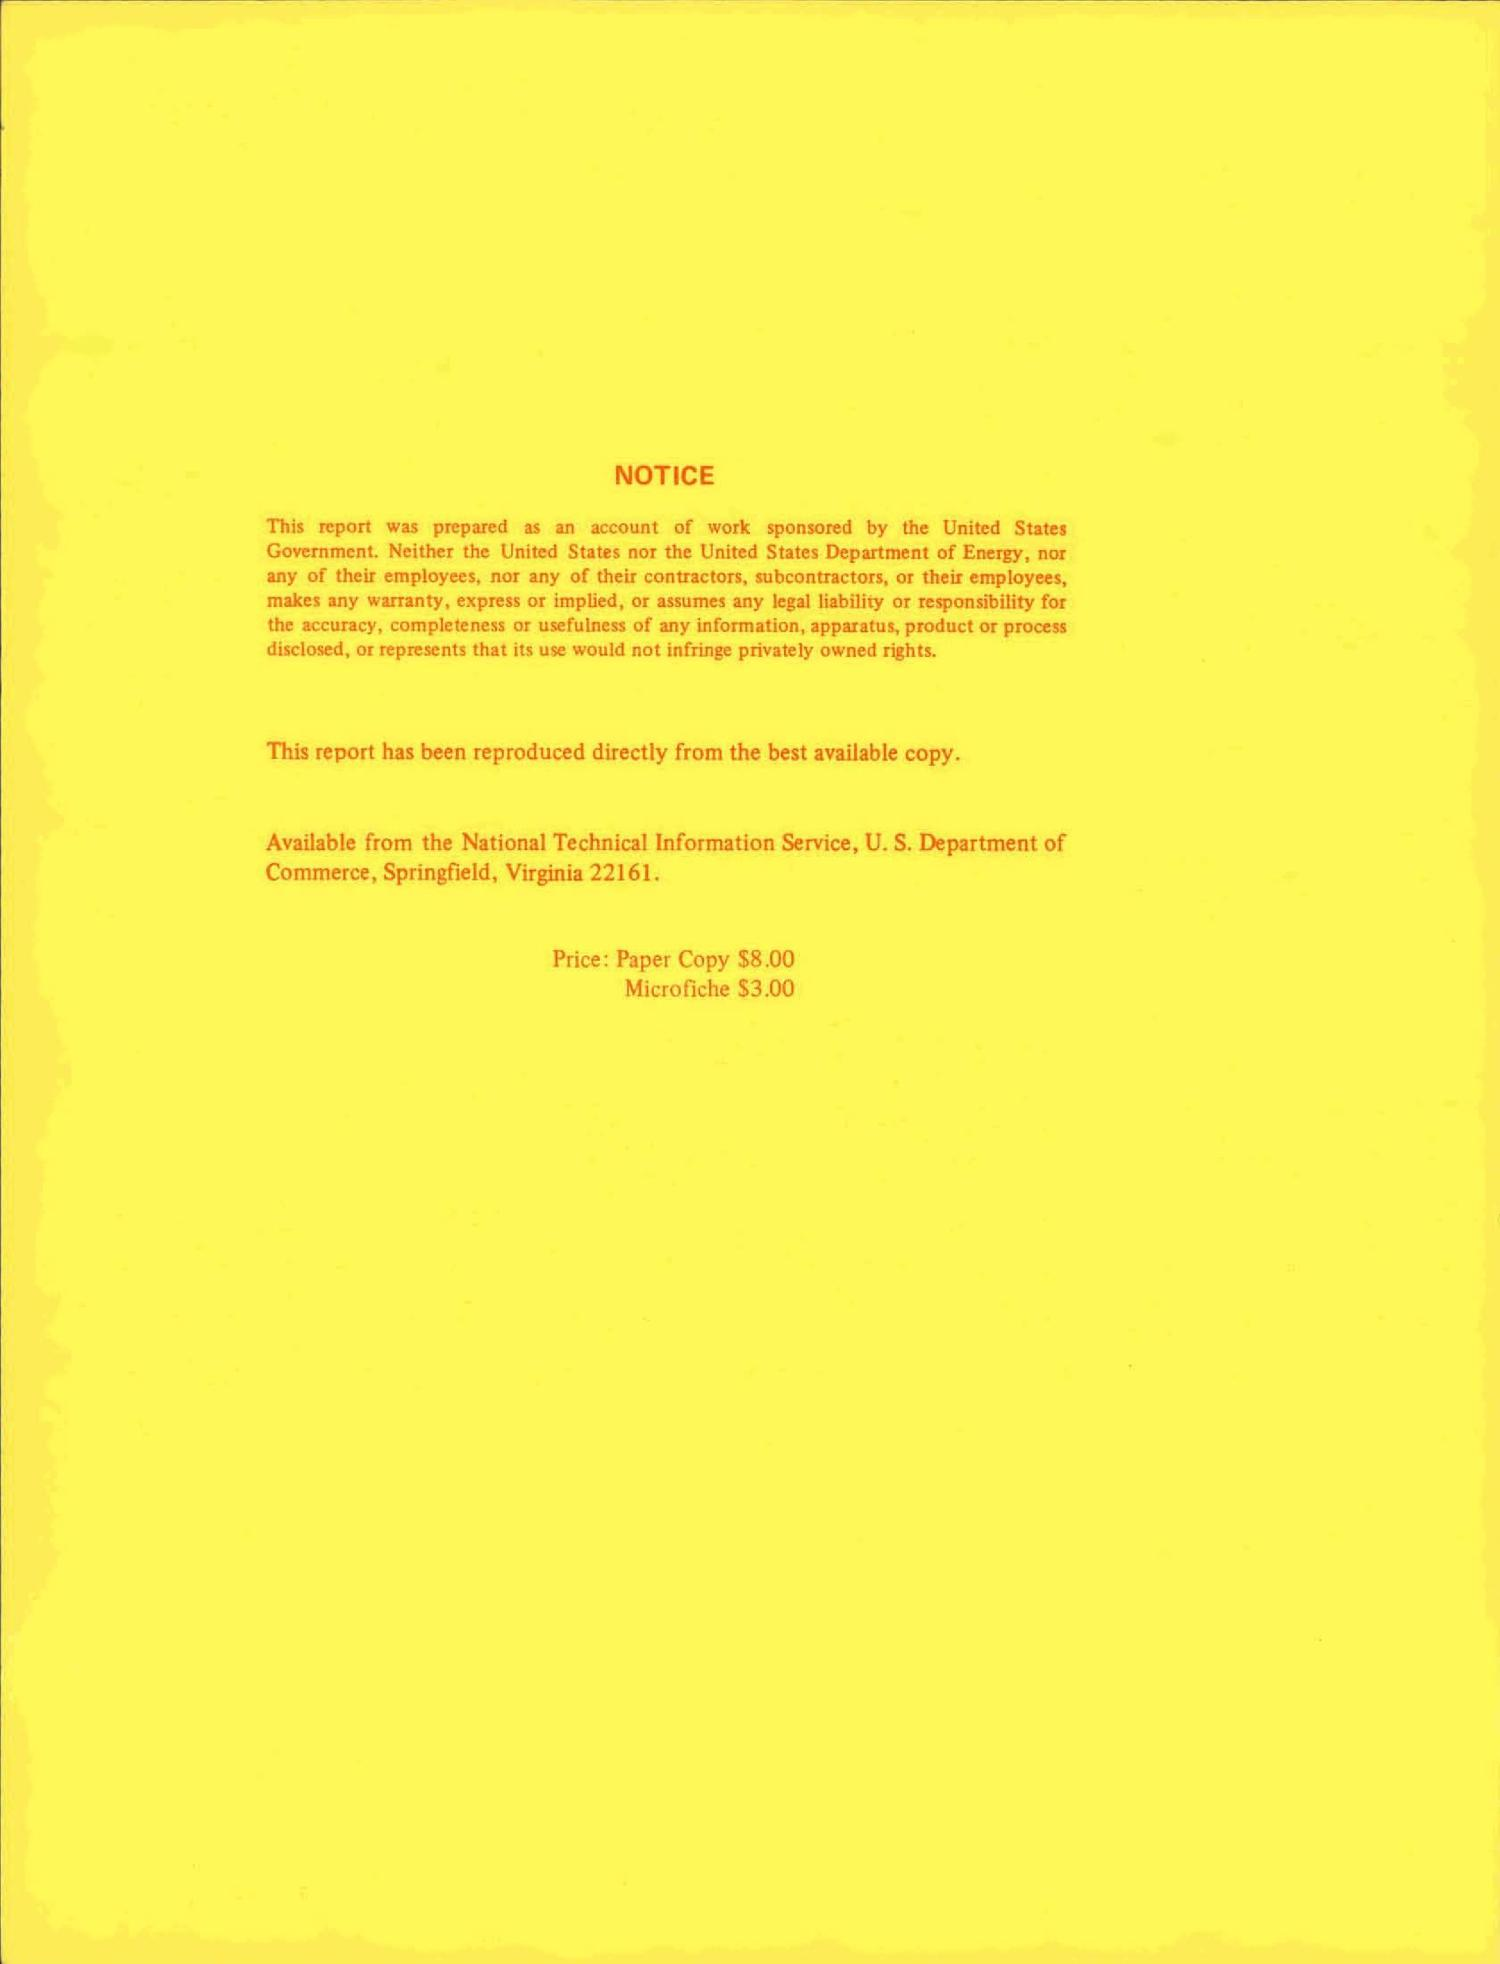 Analysis and evaluation in the production process and equipment area of the Low-Cost Solar Array Project. Quarterly report, January-April 1979                                                                                                      [Sequence #]: 4 of 179